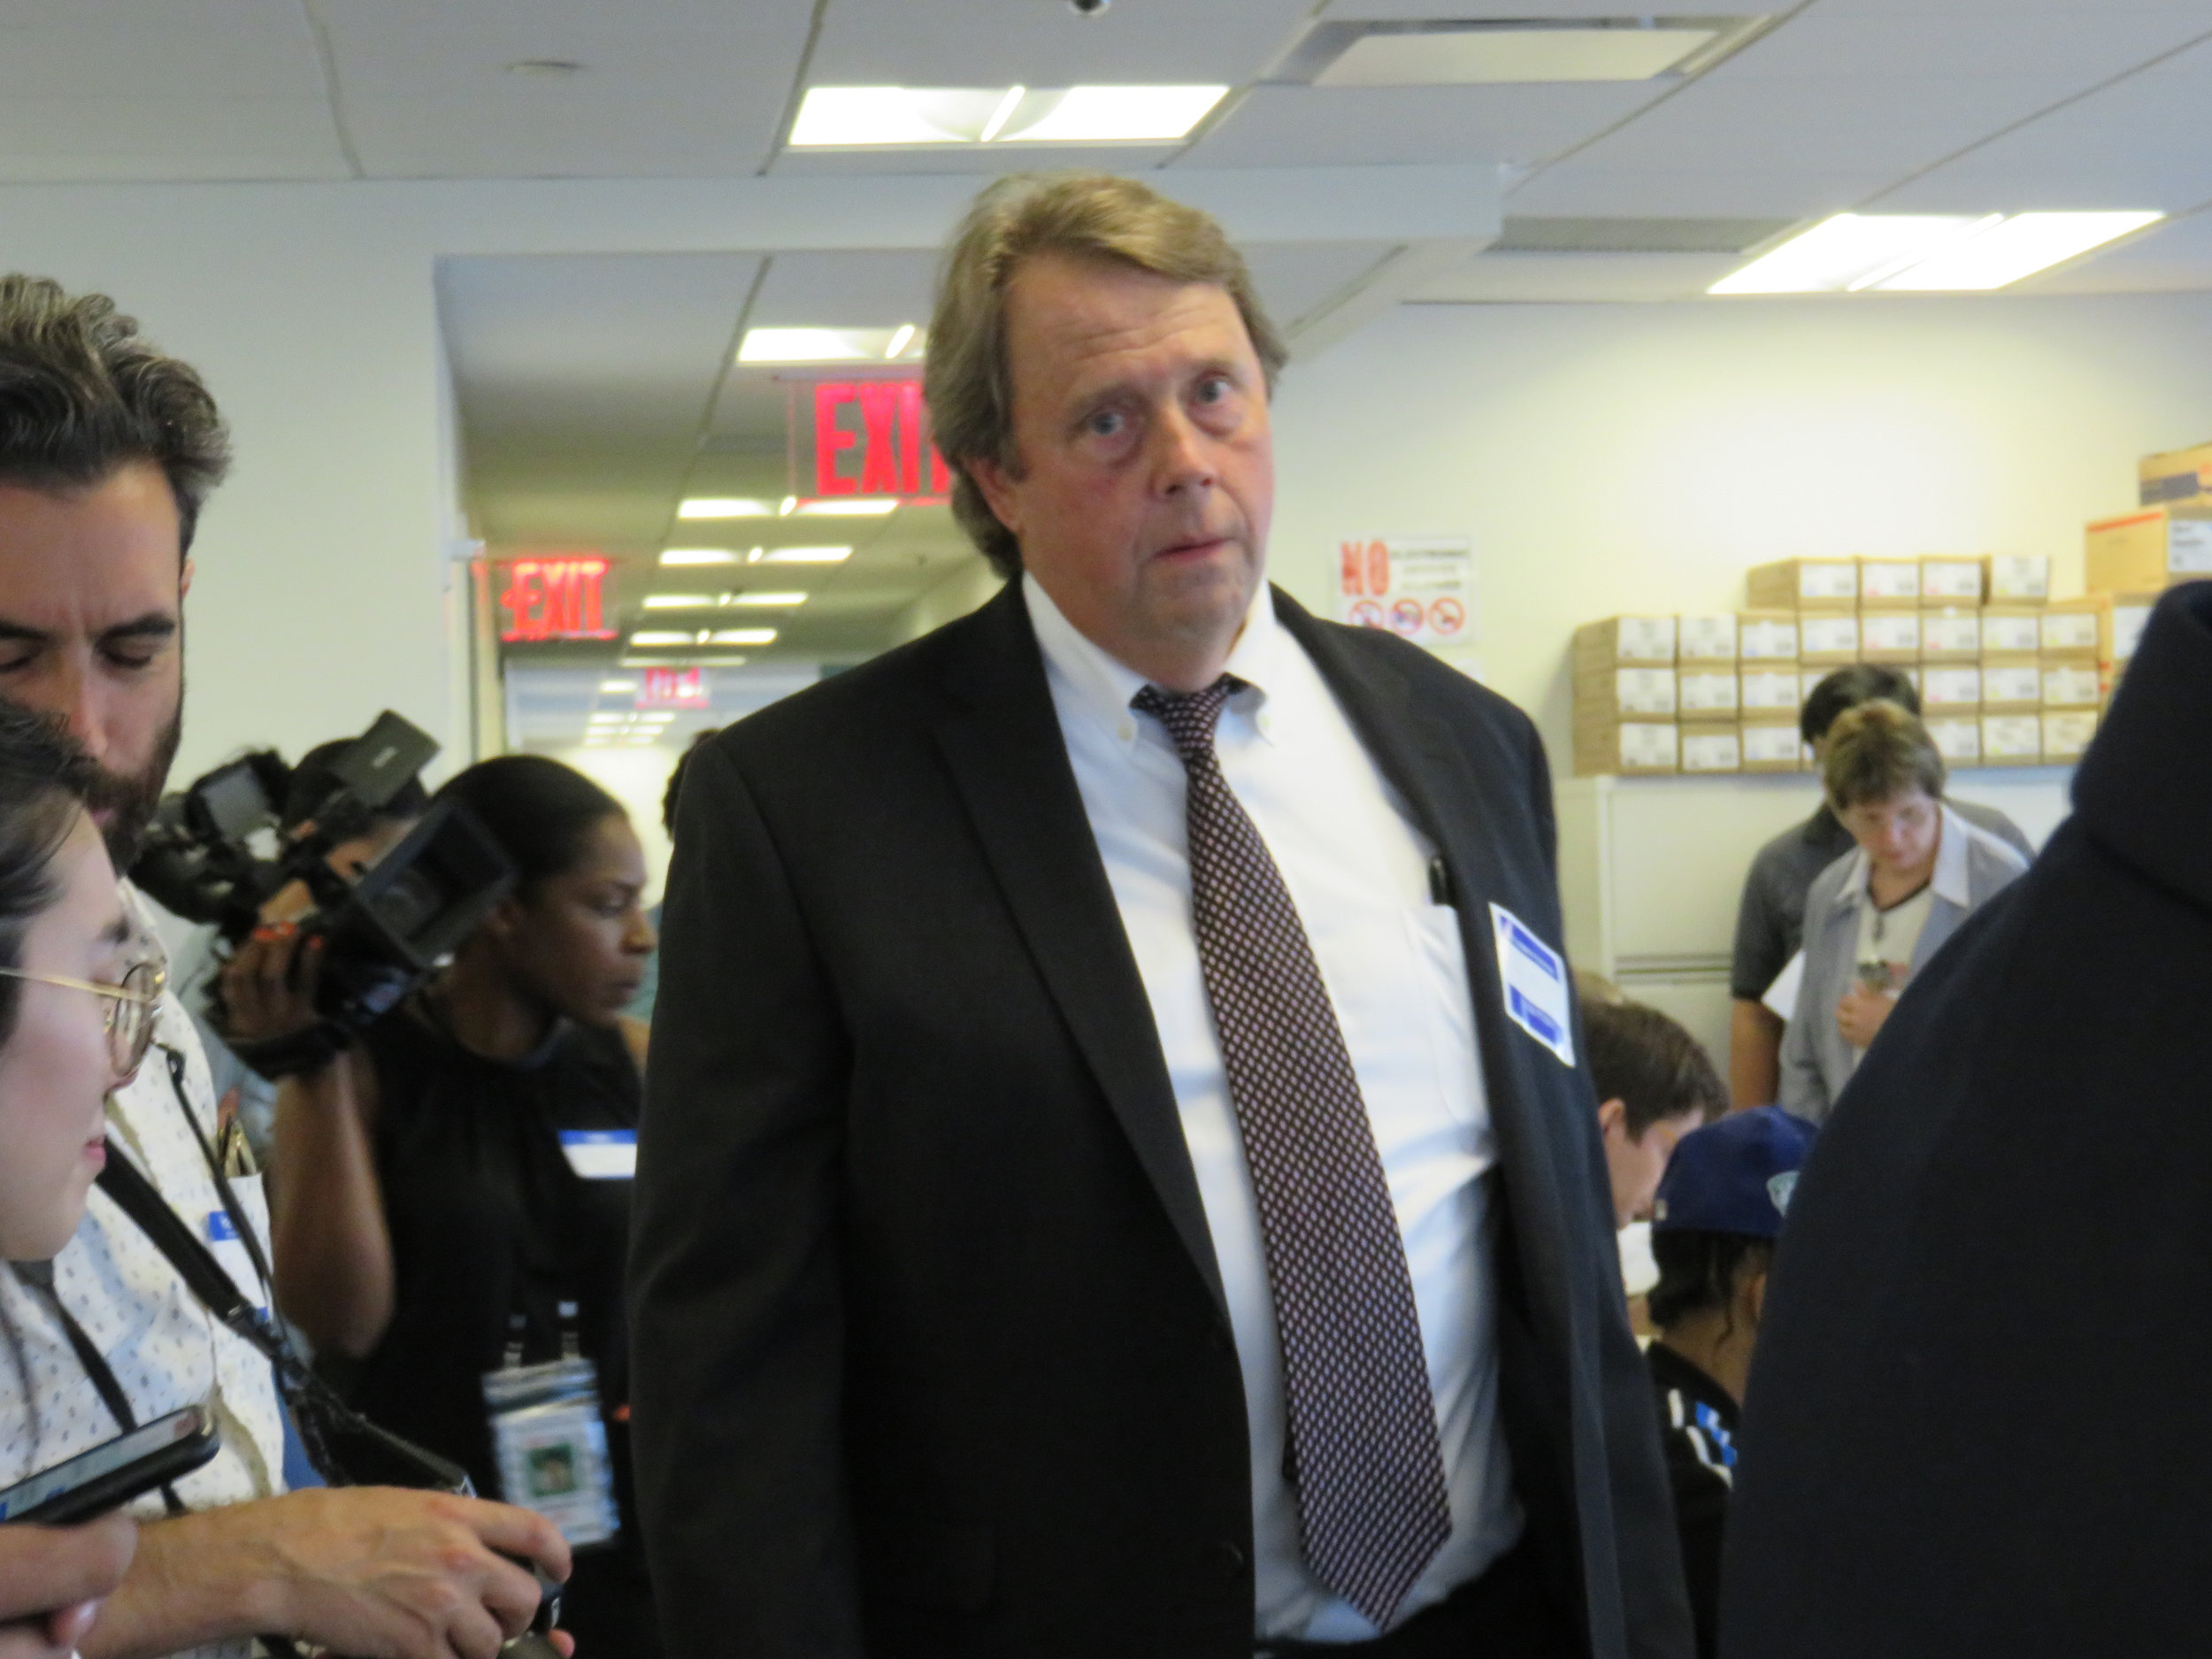 Attorney Frank Bolz of the Queens County Democratic Party oversees Katz's poll monitors.  Eagle  photo by David Brand